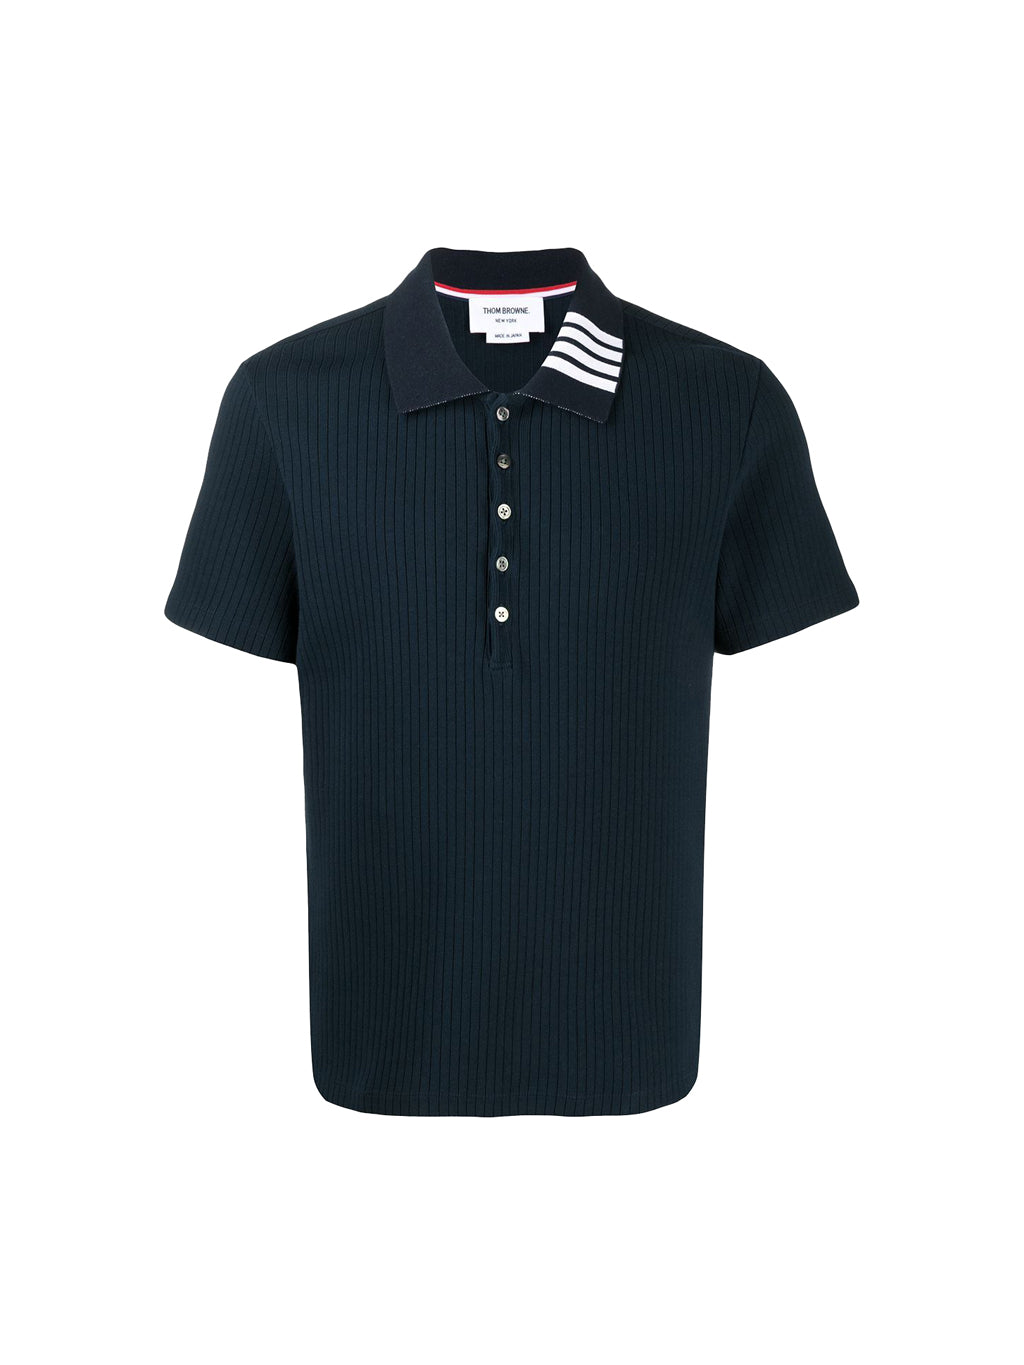 Navy 4 Bar Collar Polo T-Shirt